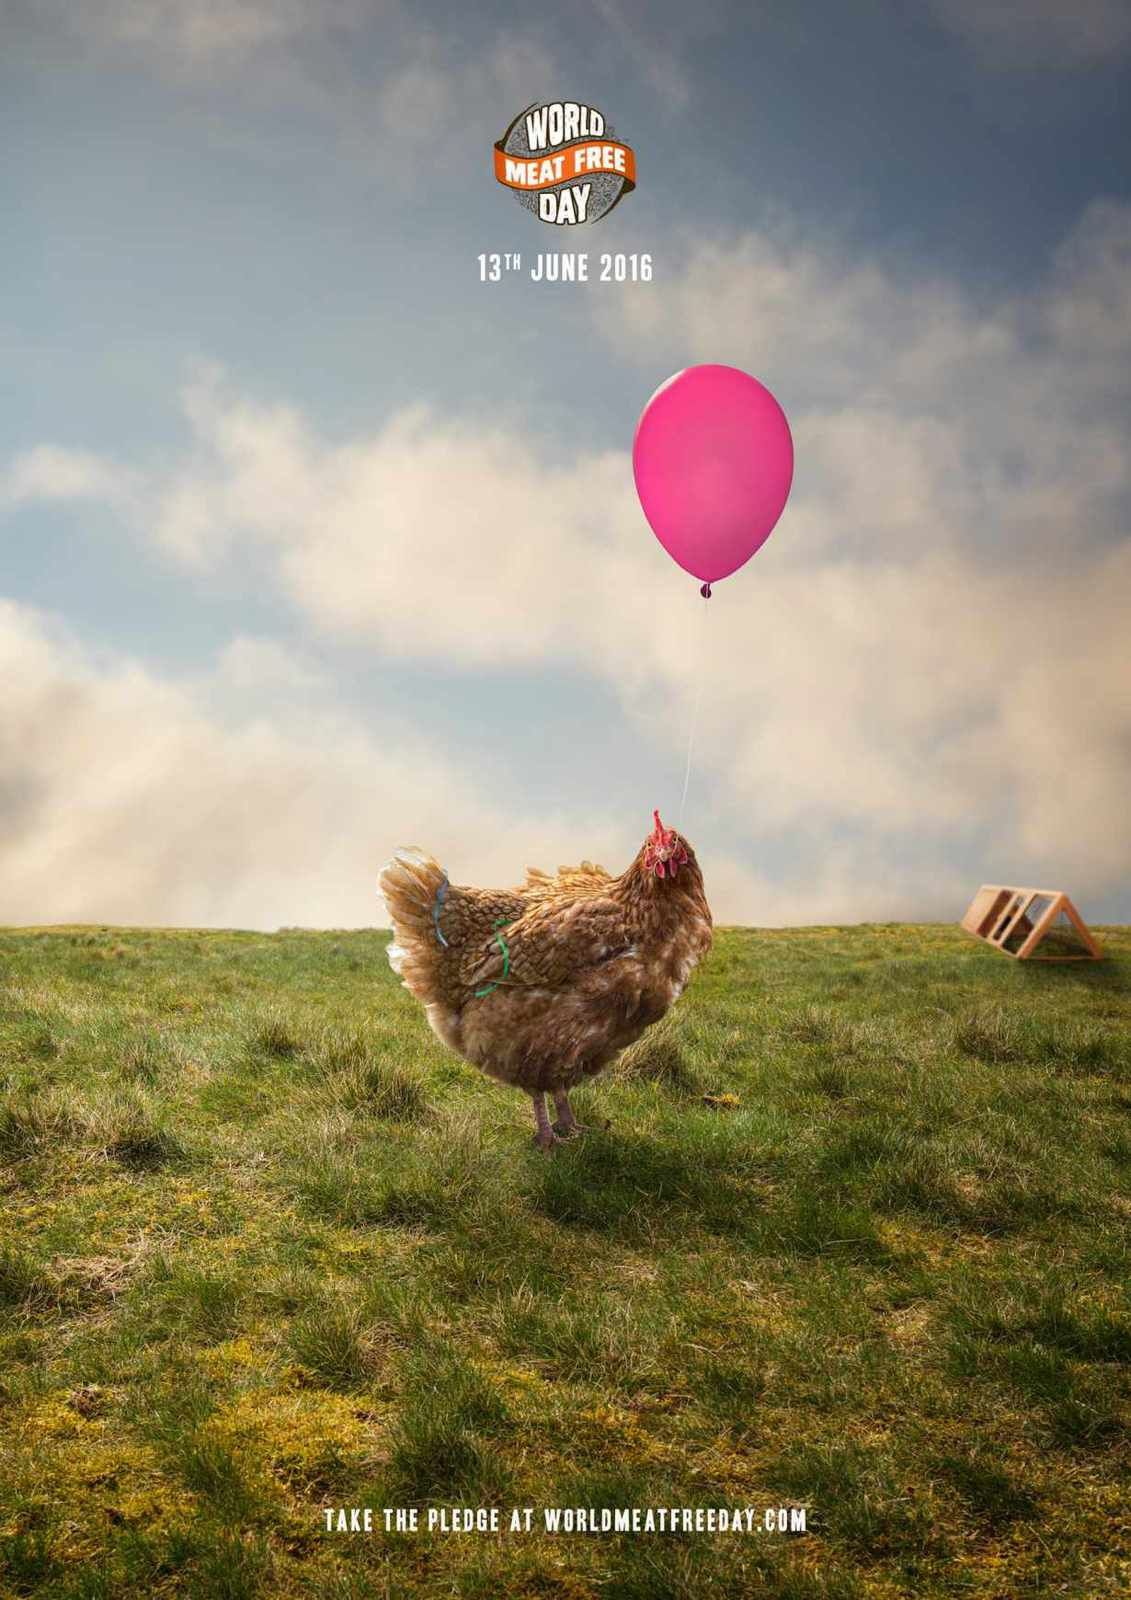 World Meat Free Day | Agence : Bigdog Agency, Leicester, Angleterre (avril 2016)